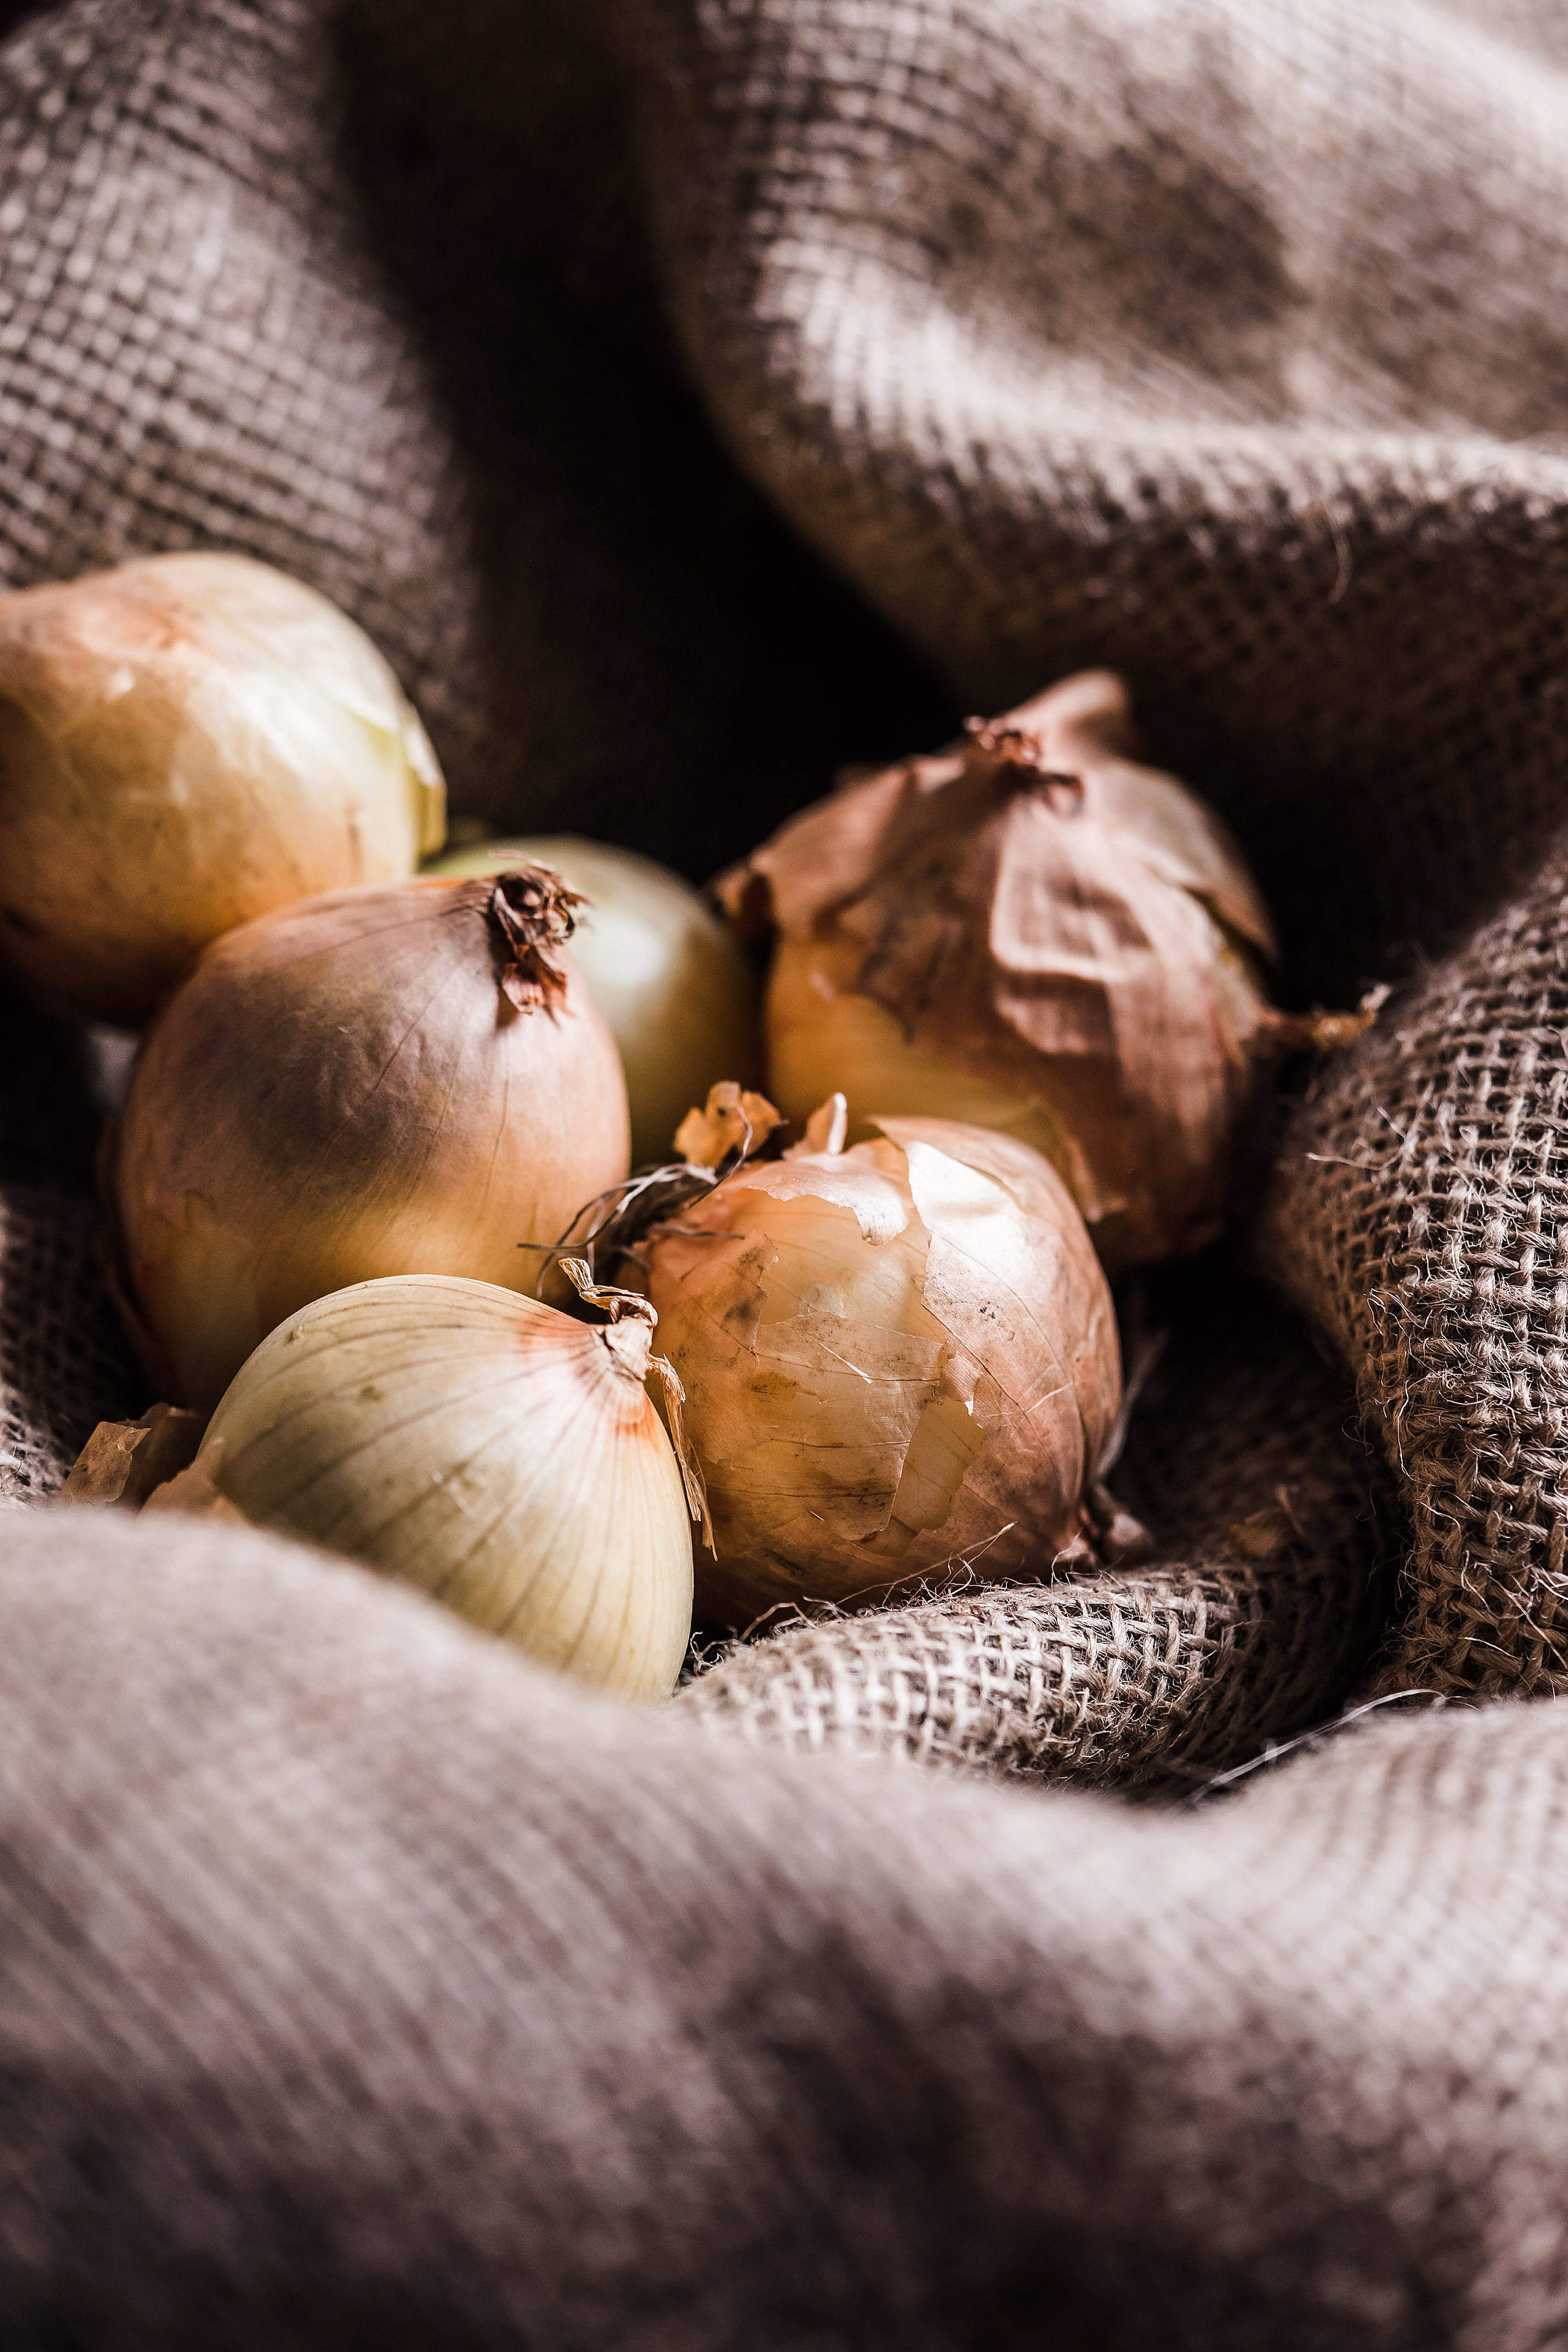 Onions in Sack Vertical Free Stock Photo